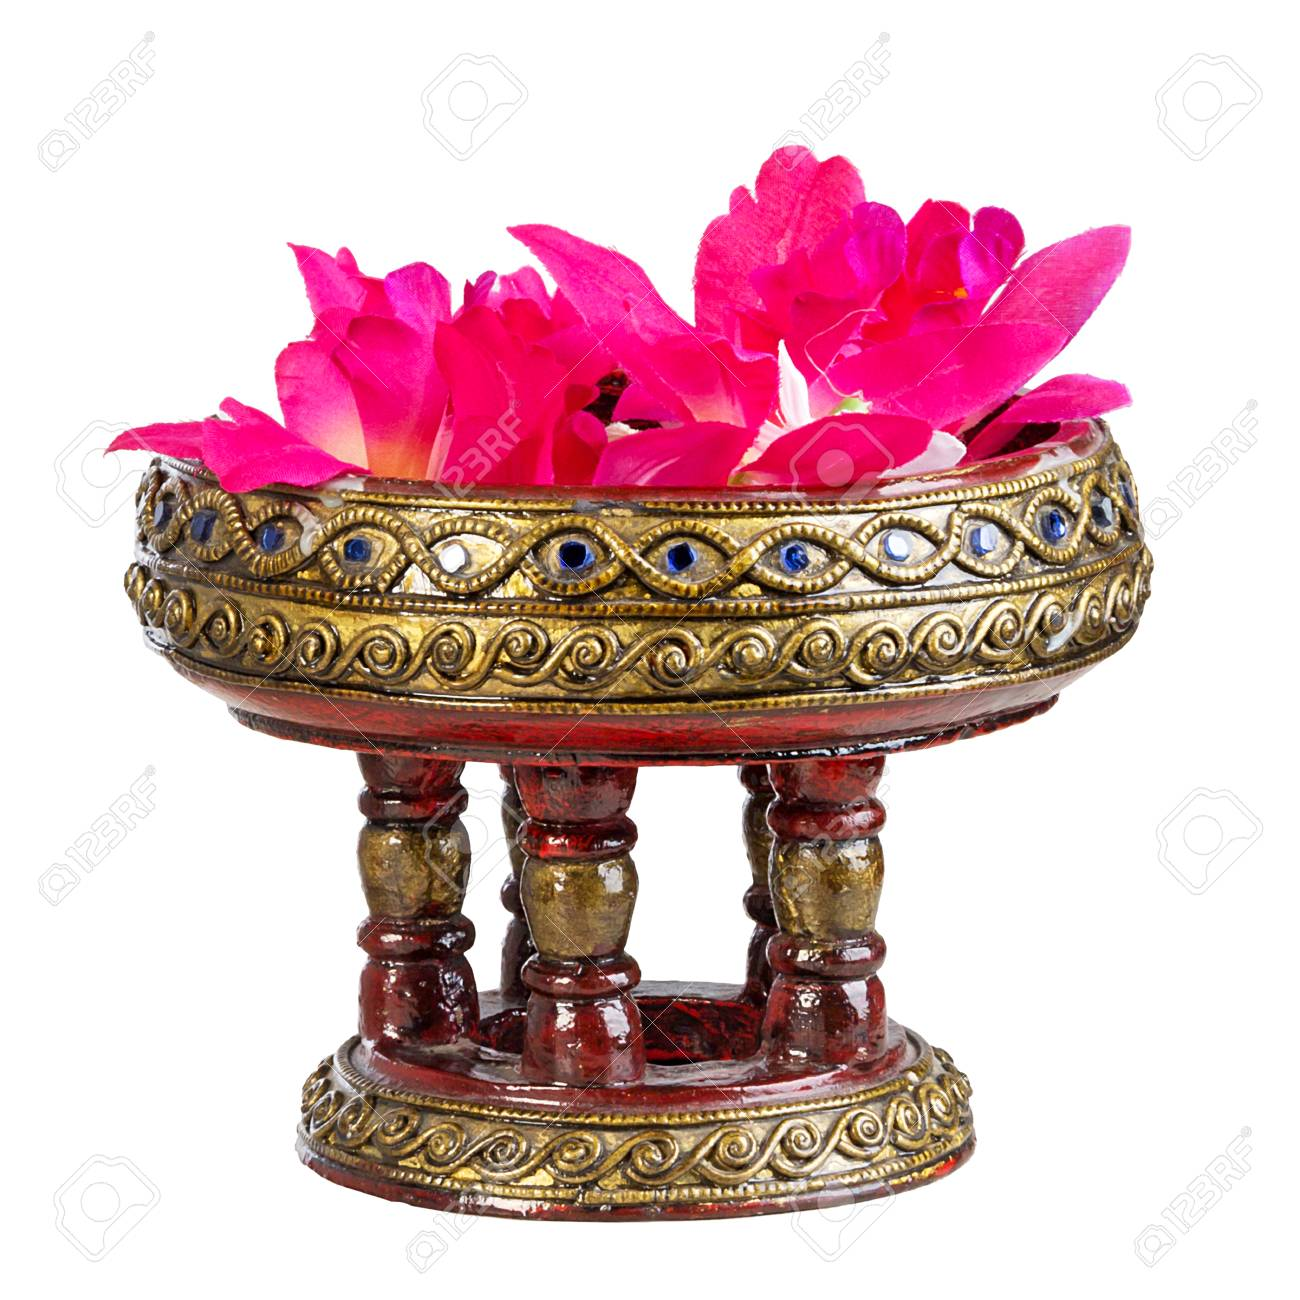 Wooden Handicrafts Of Thailand Northernadorned With Flowers Stock